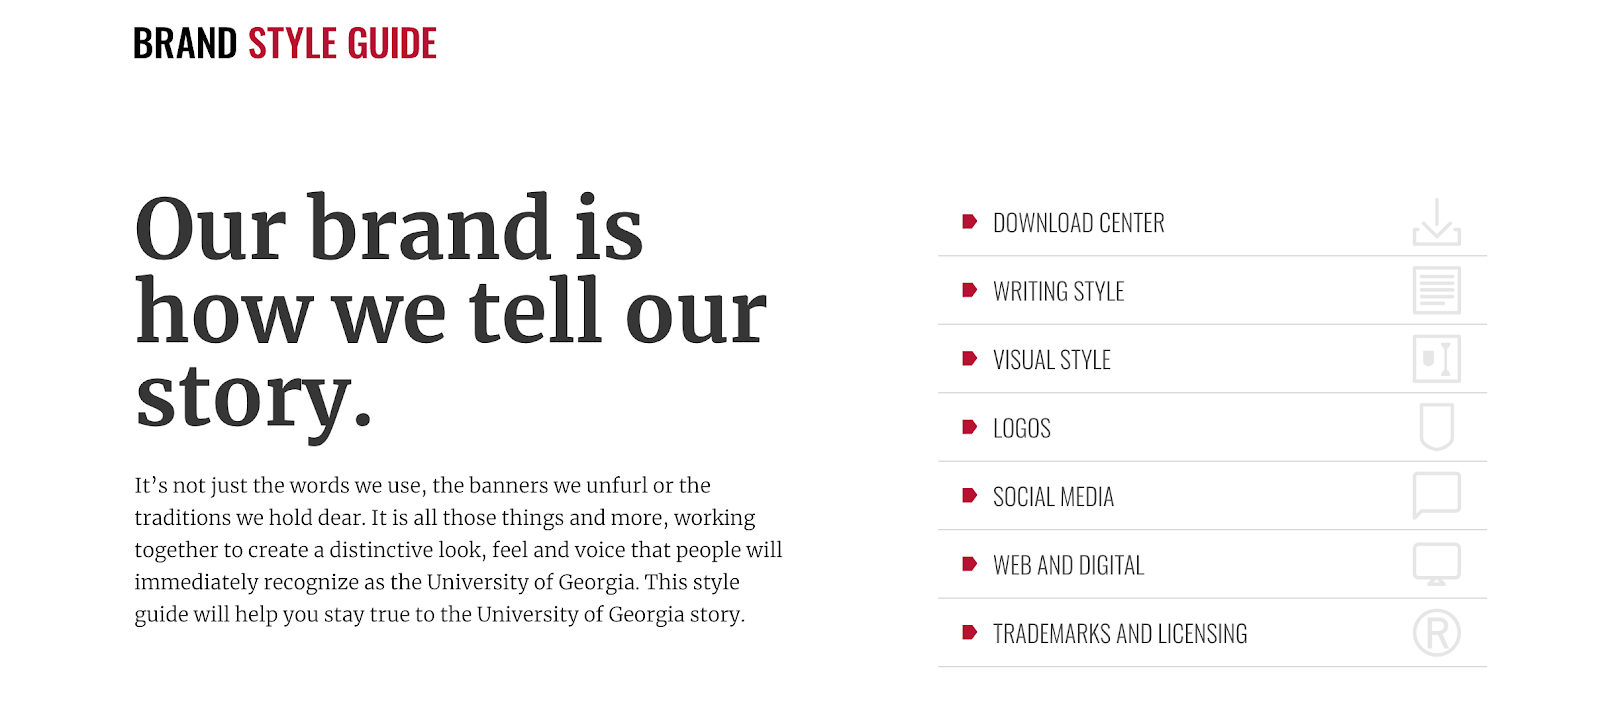 A screenshot of part of the content style guide from the University of Georgia. This page has the heading: 'Our brand is how we tell our story.' and includes a table of content.